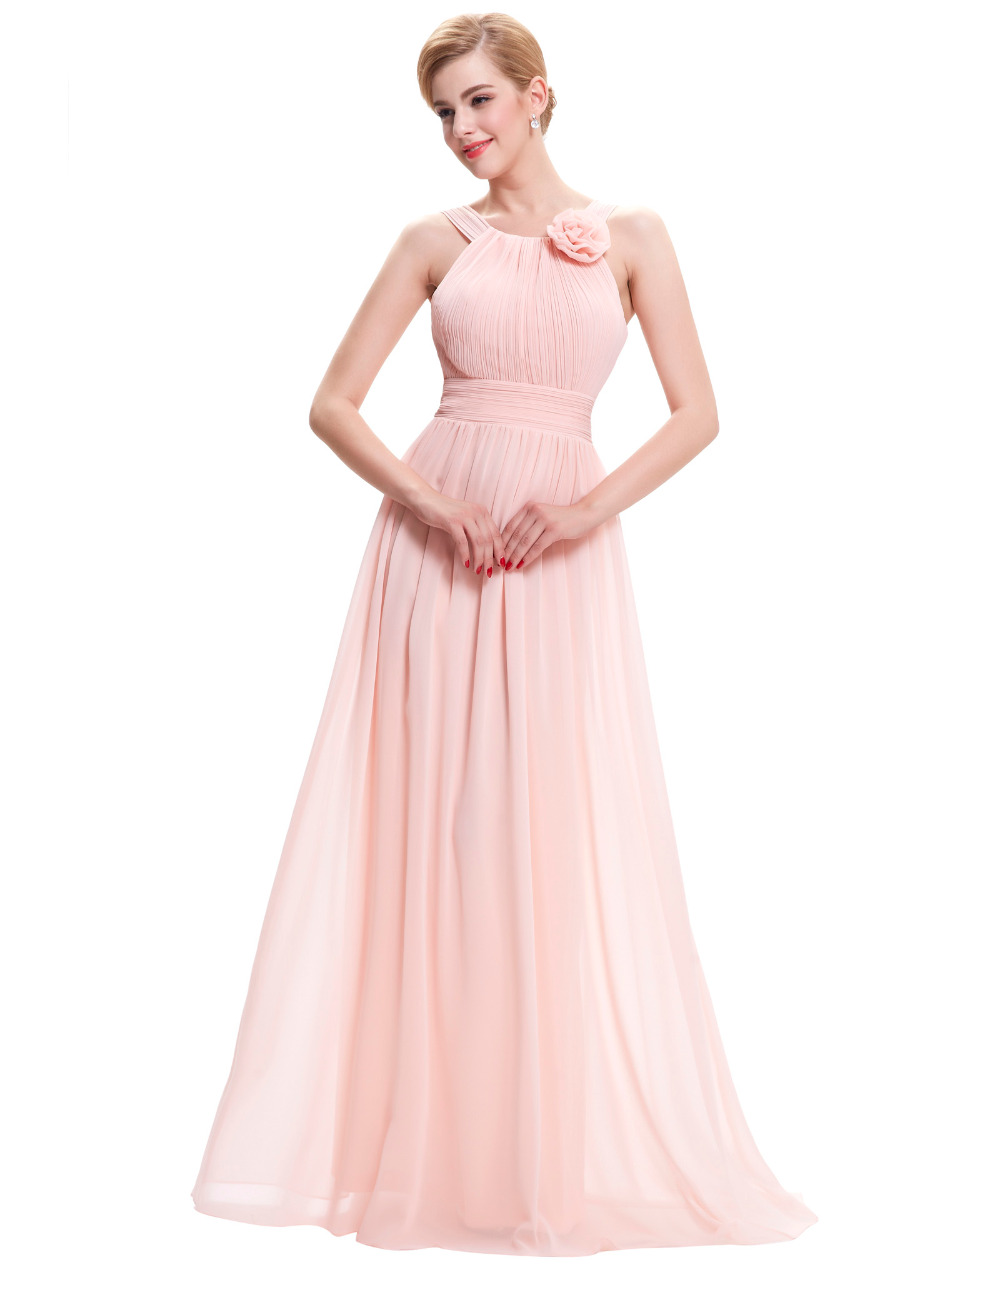 Long Pink Evening Dress 2016 New Arrival Formal Dresses